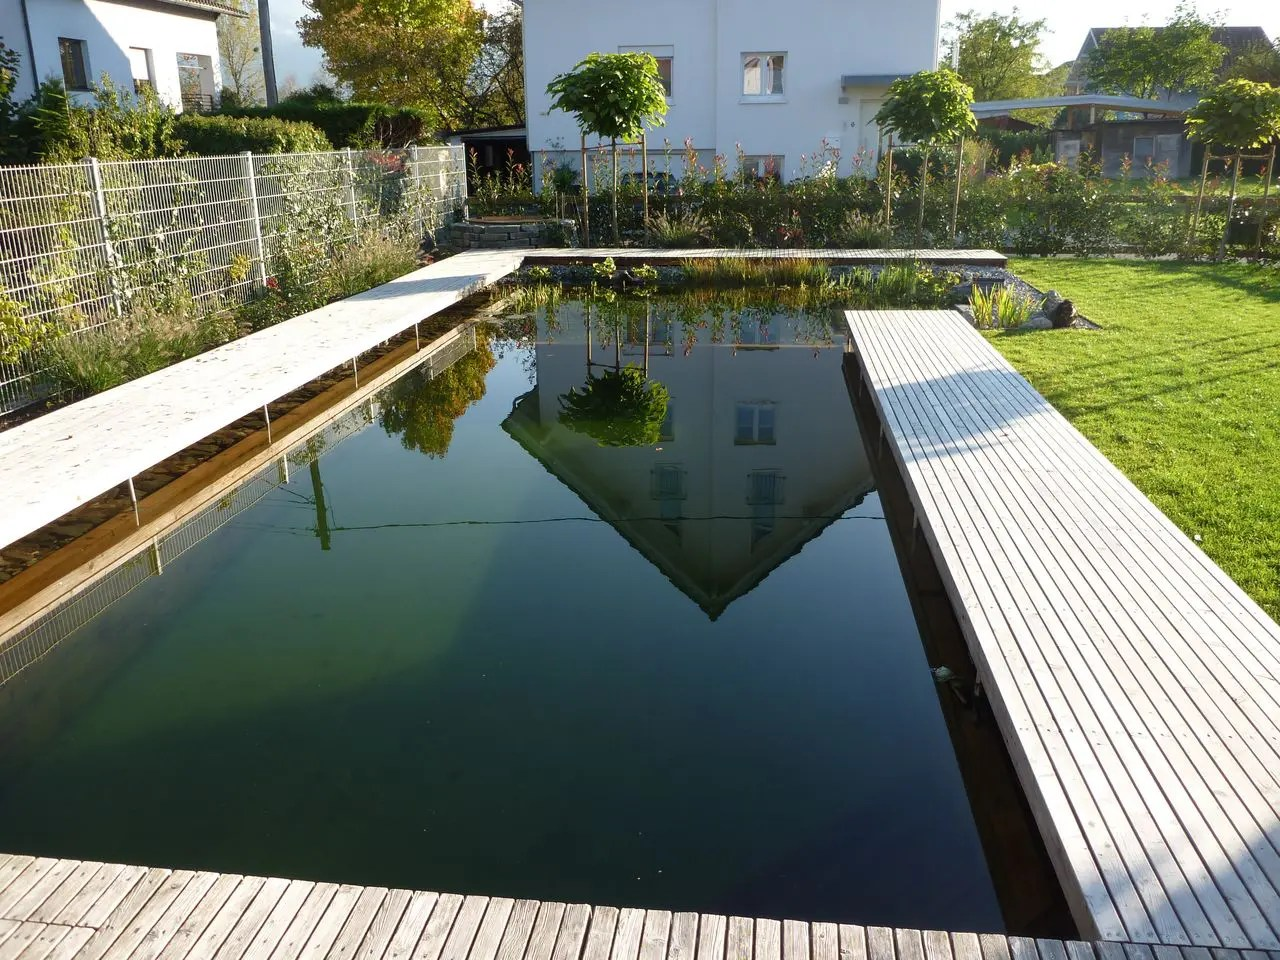 Pool Garten Algen Alge Gartenbau Pool For Nature